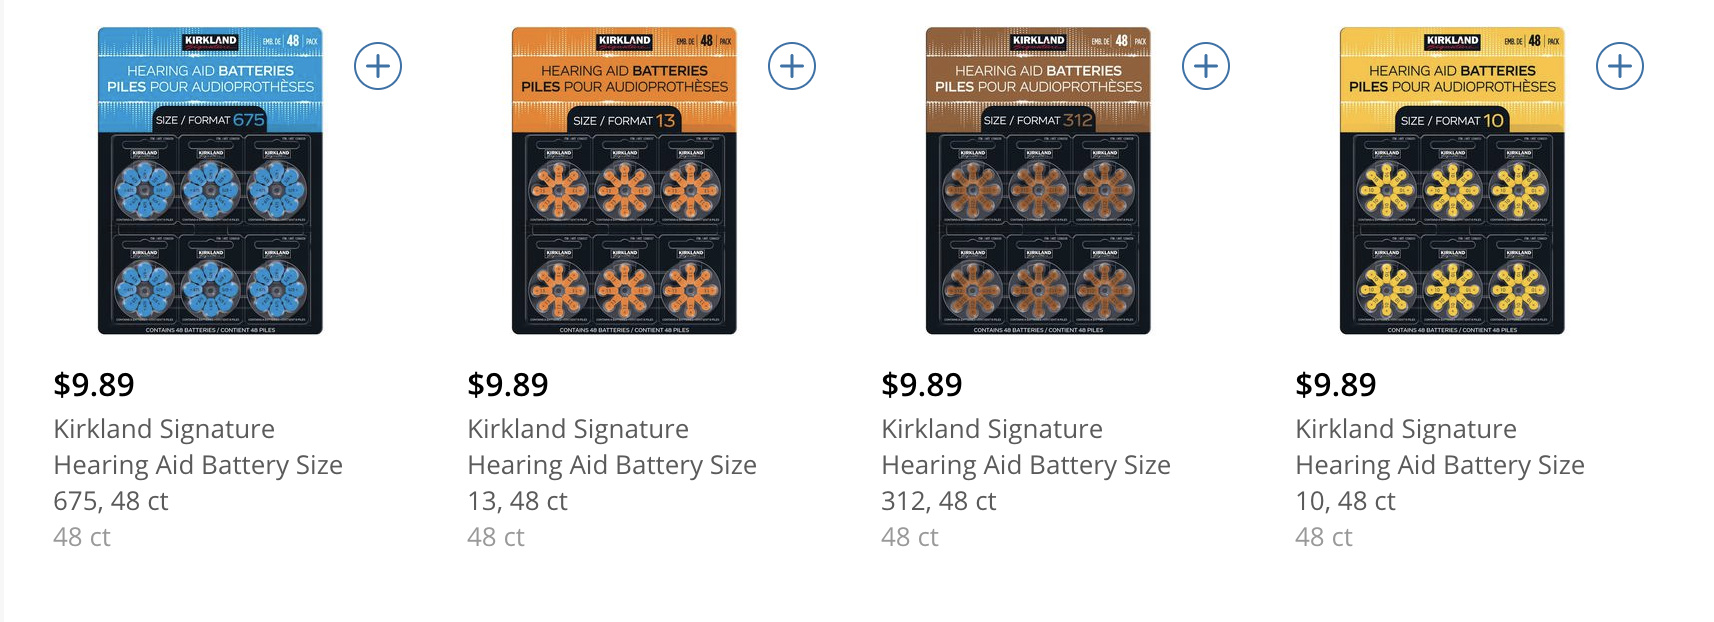 How Much Do Hearing Aid Batteries Cost At Costco Question And Answer Hearing Aid Forum Active Hearing Loss Community